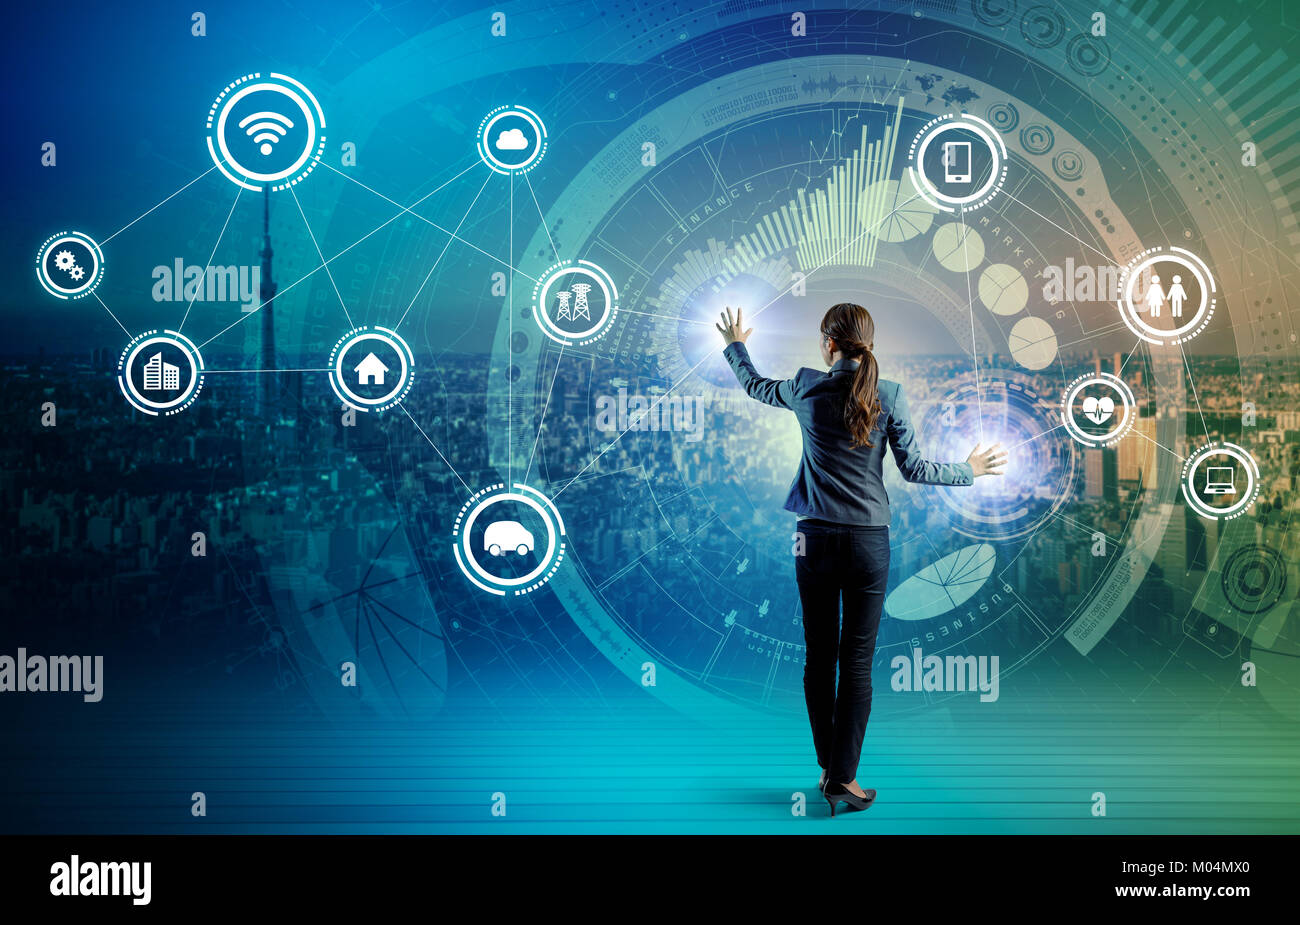 IoT(Internet of Things) concept. Fintech(Financial Technology). ICT(Information Communication Technology). Smart Stock Photo